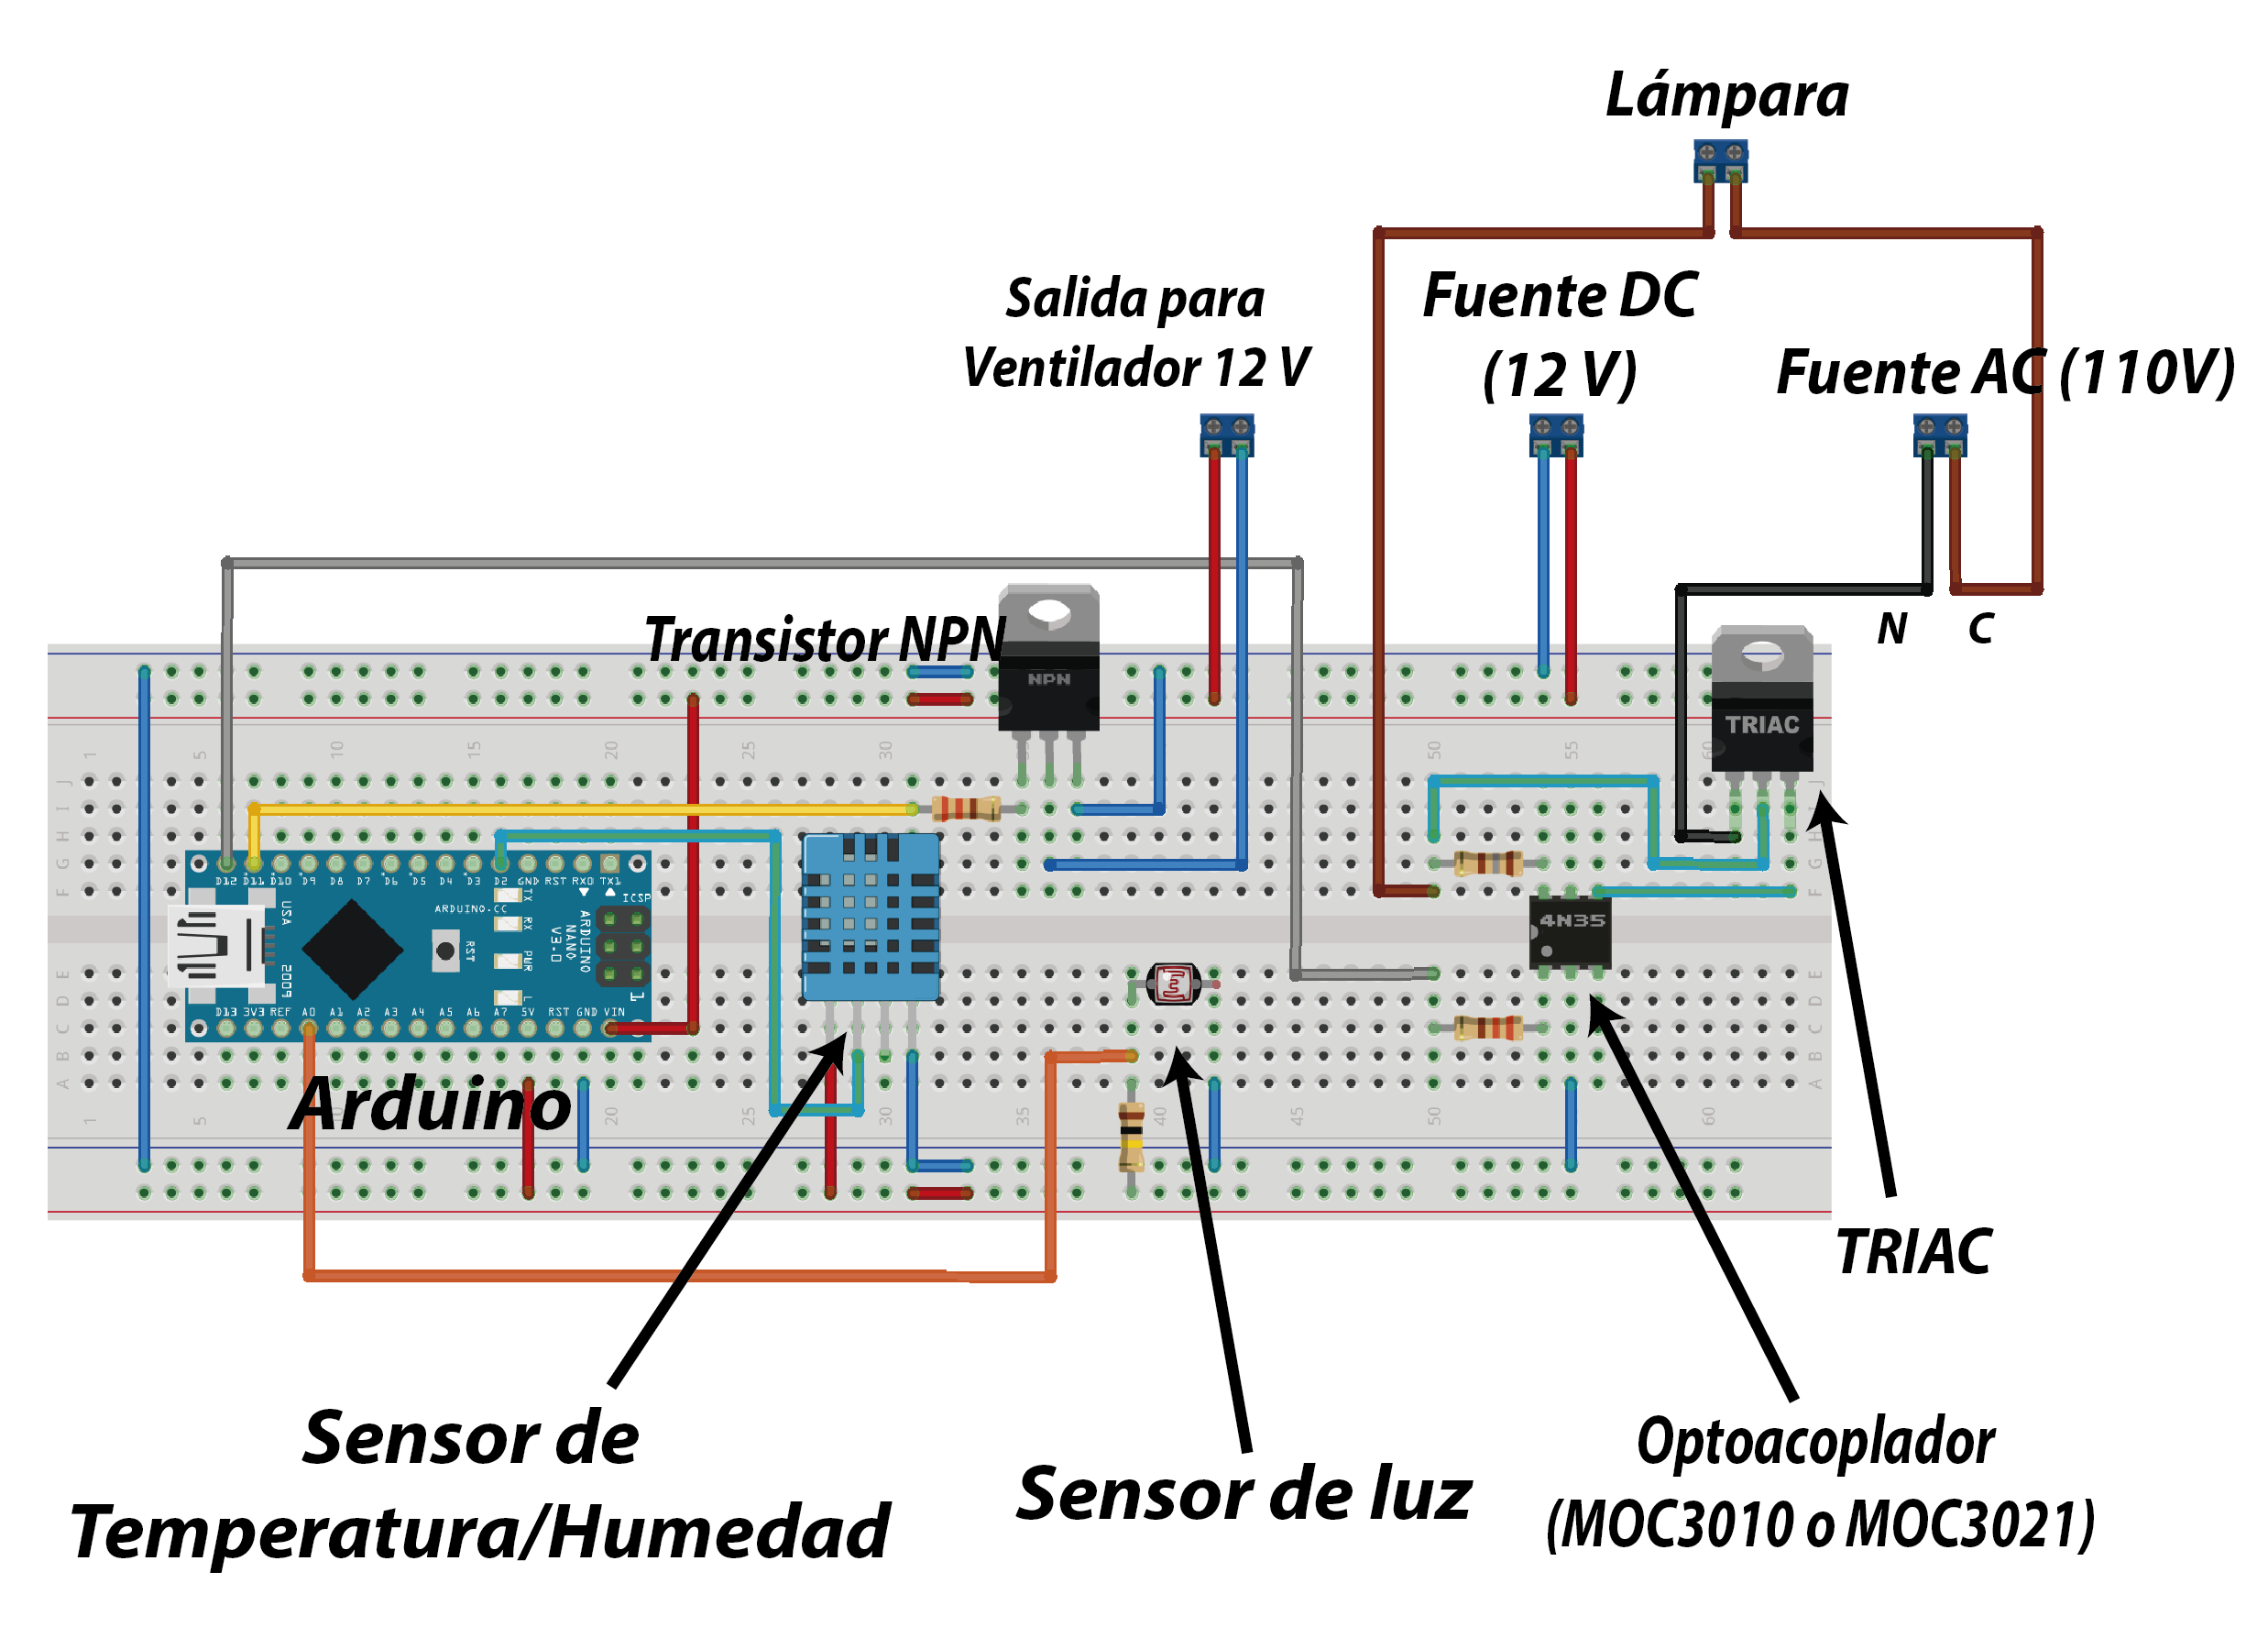 Lab: Using a Transistor to Control High Current Loads with